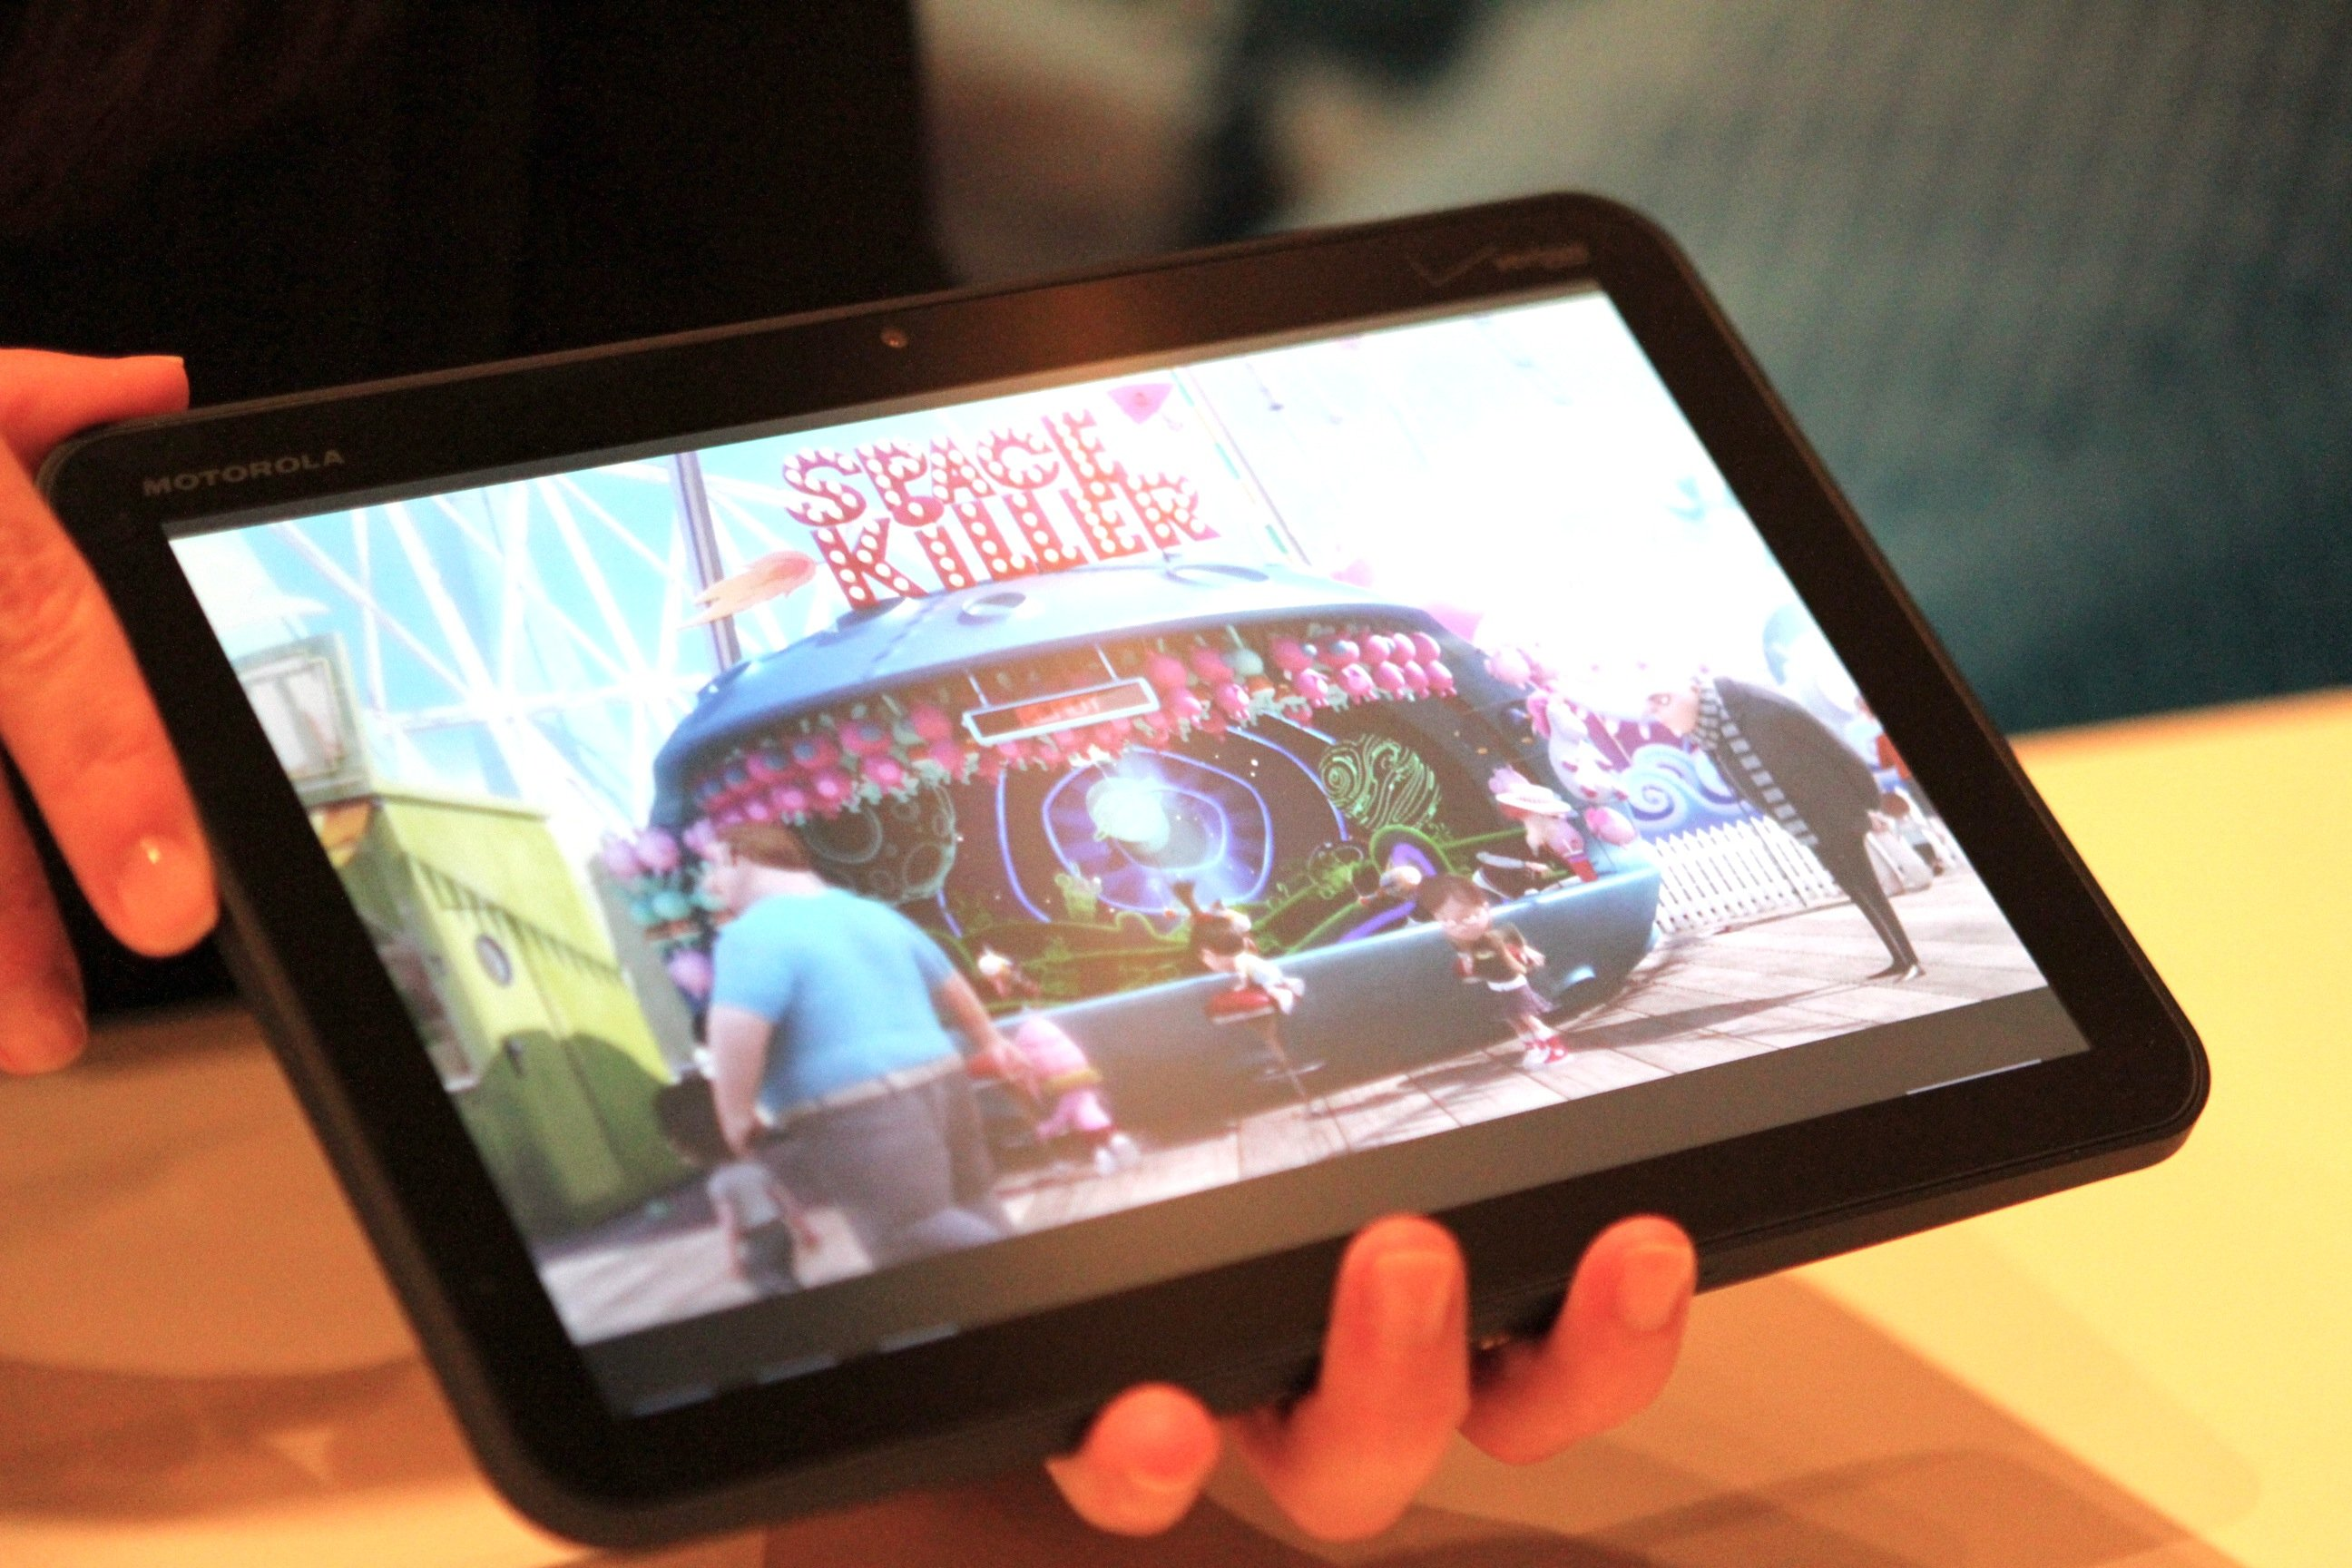 Motorola showed off their Android 3.0 Honeycomb tablet, known as the XOOM, at CES Las Vegas 2011